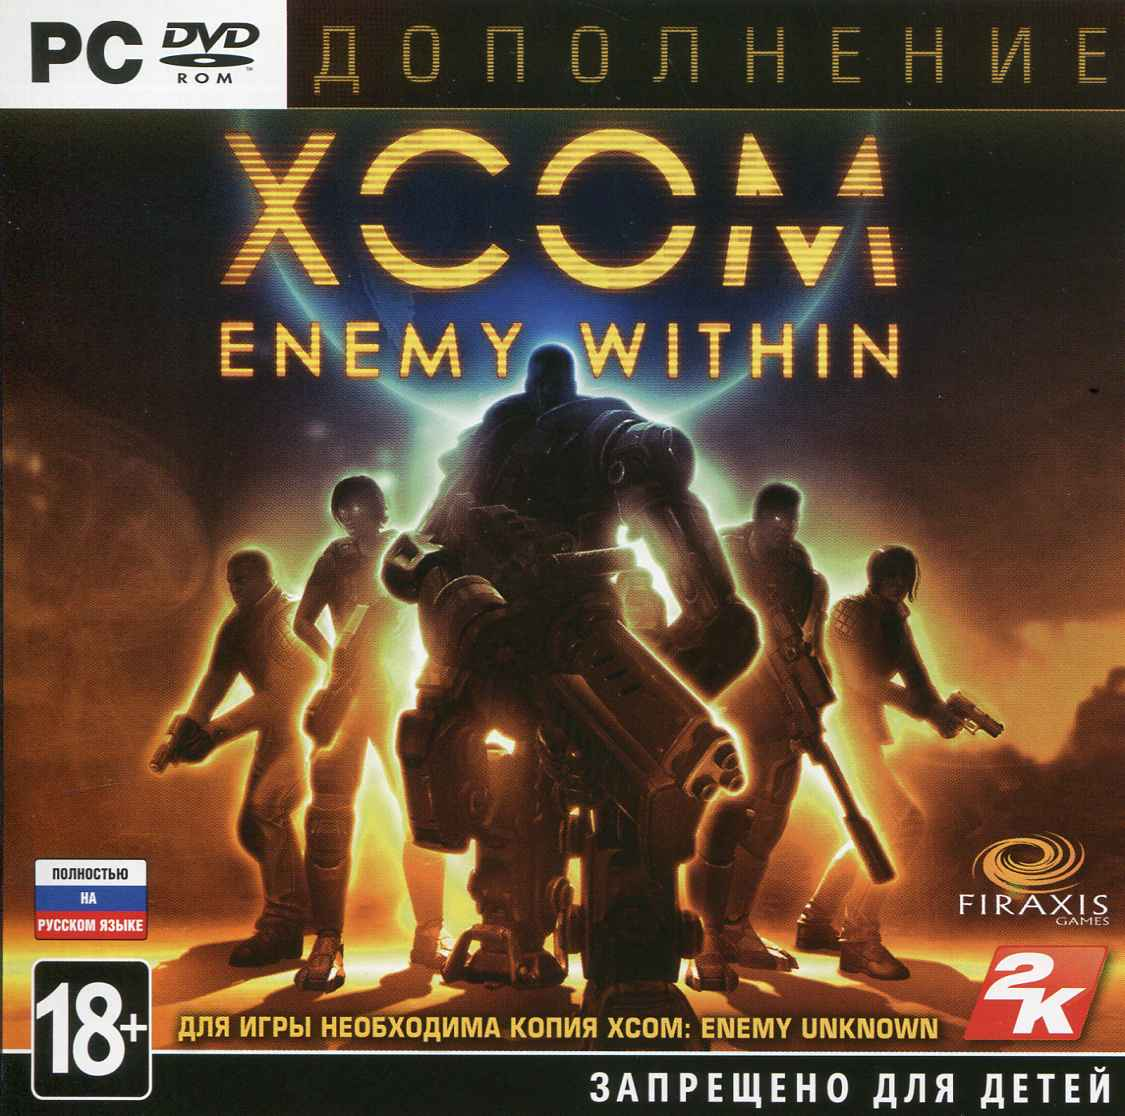 XCOM: Enemy Within (activation key in Steam)